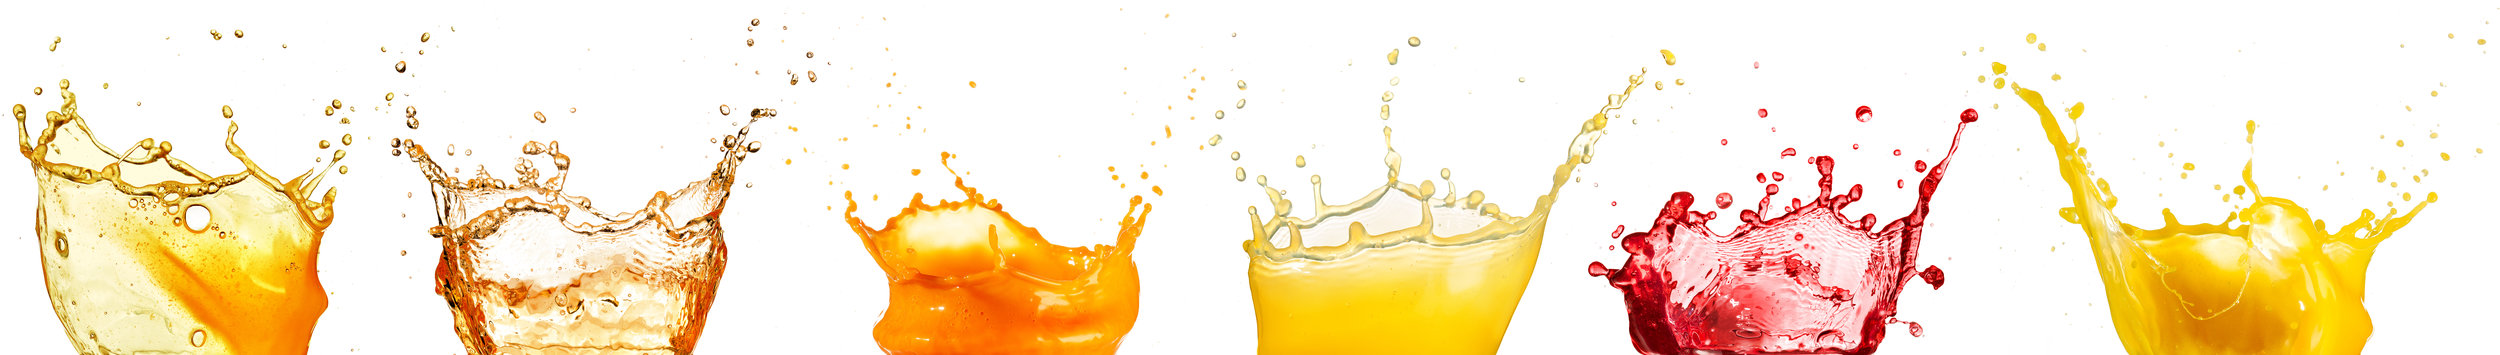 fruit-juice-splash-collection-689593006_12000x1704.jpeg